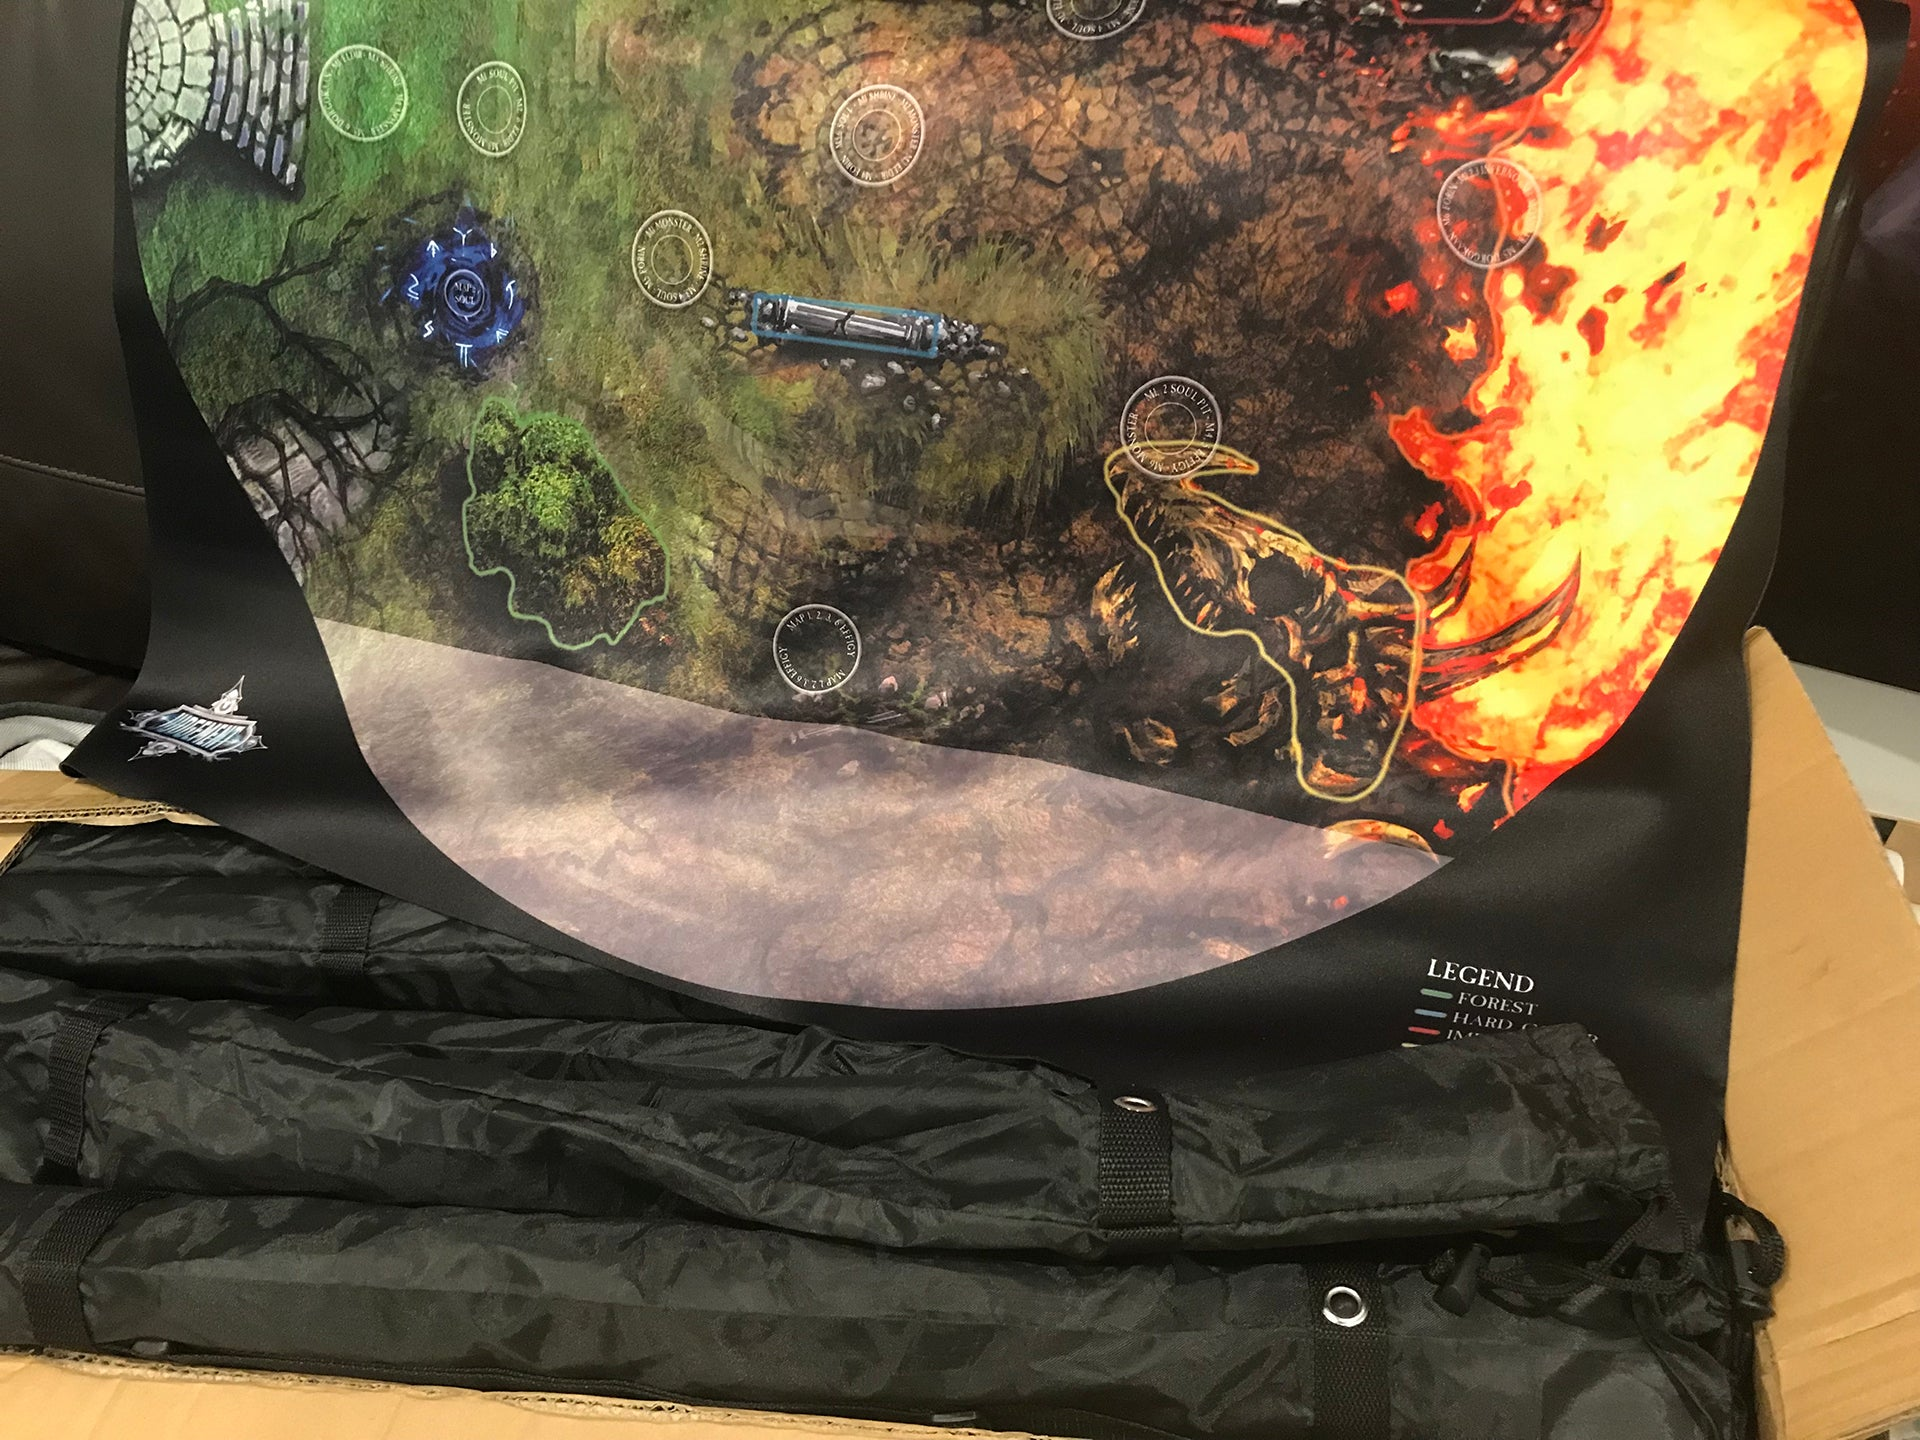 Scorched Earth neoprene mats